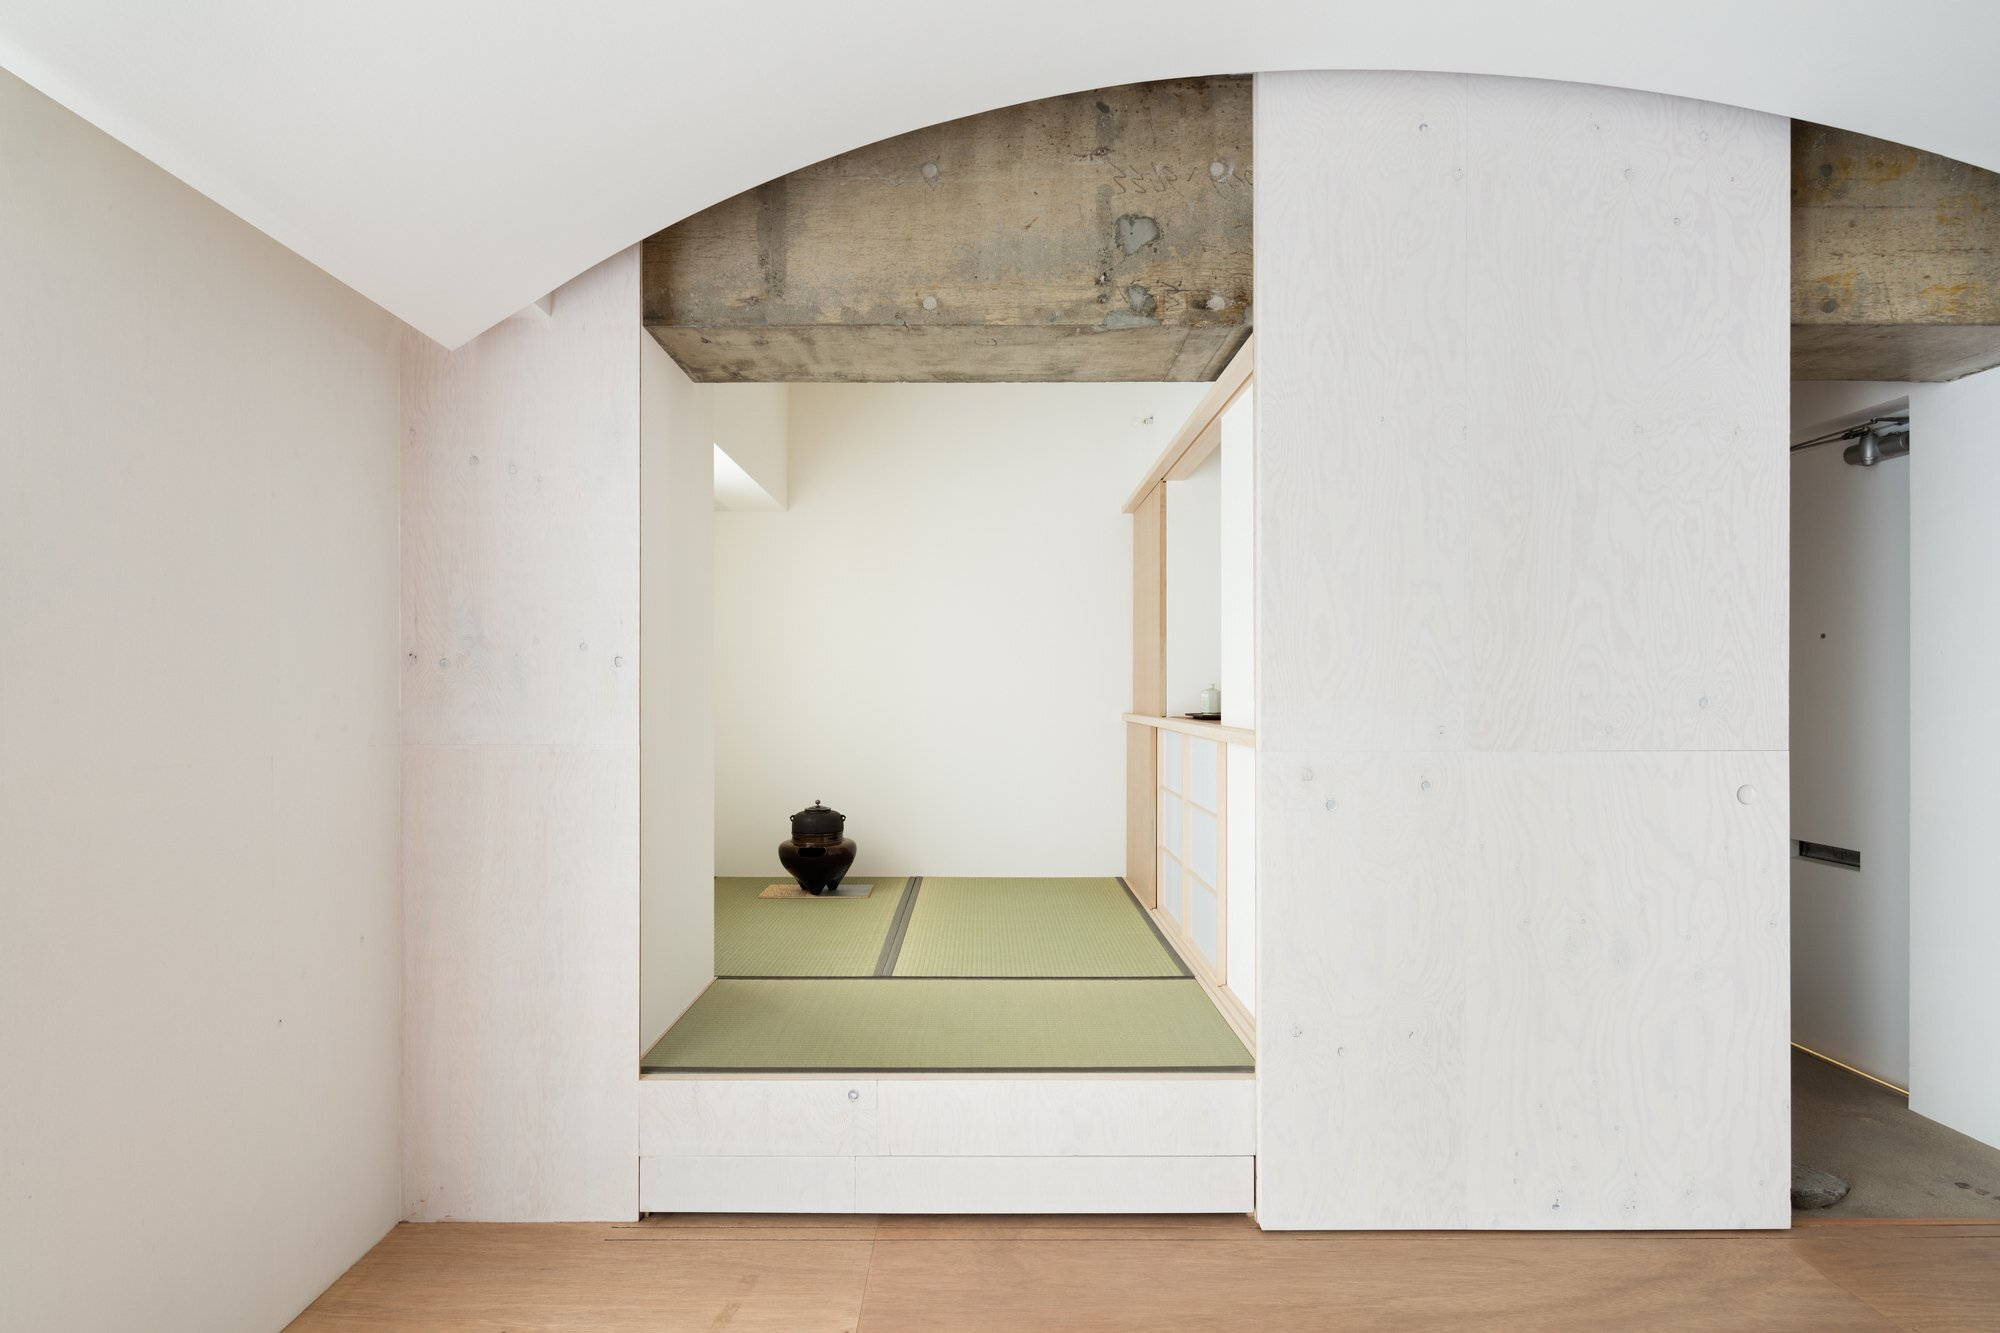 Team Living House - Masatoshi Hirai Architects Atelier - Tokyo - Japanese Room - Humble Homes